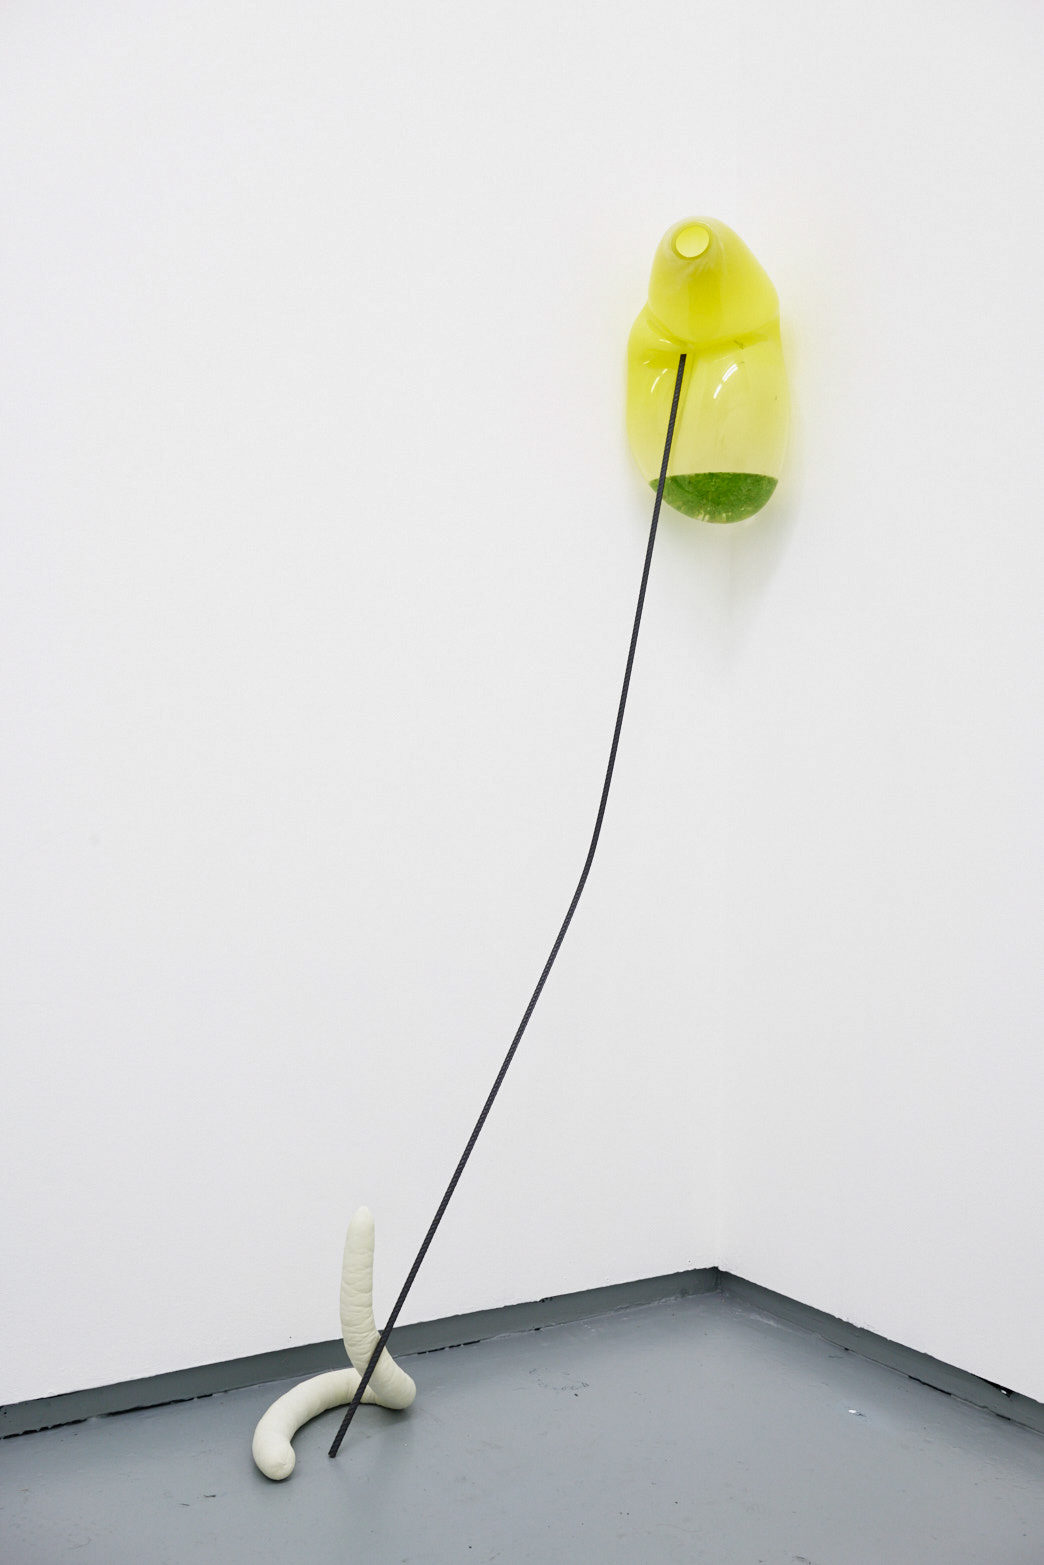 Julia Crabtree and William Evans, Swell, 2018, Glass, uranium glass, pond life, rebar, jesmonite, sausage casing, pigment, photo: Original&theCopy